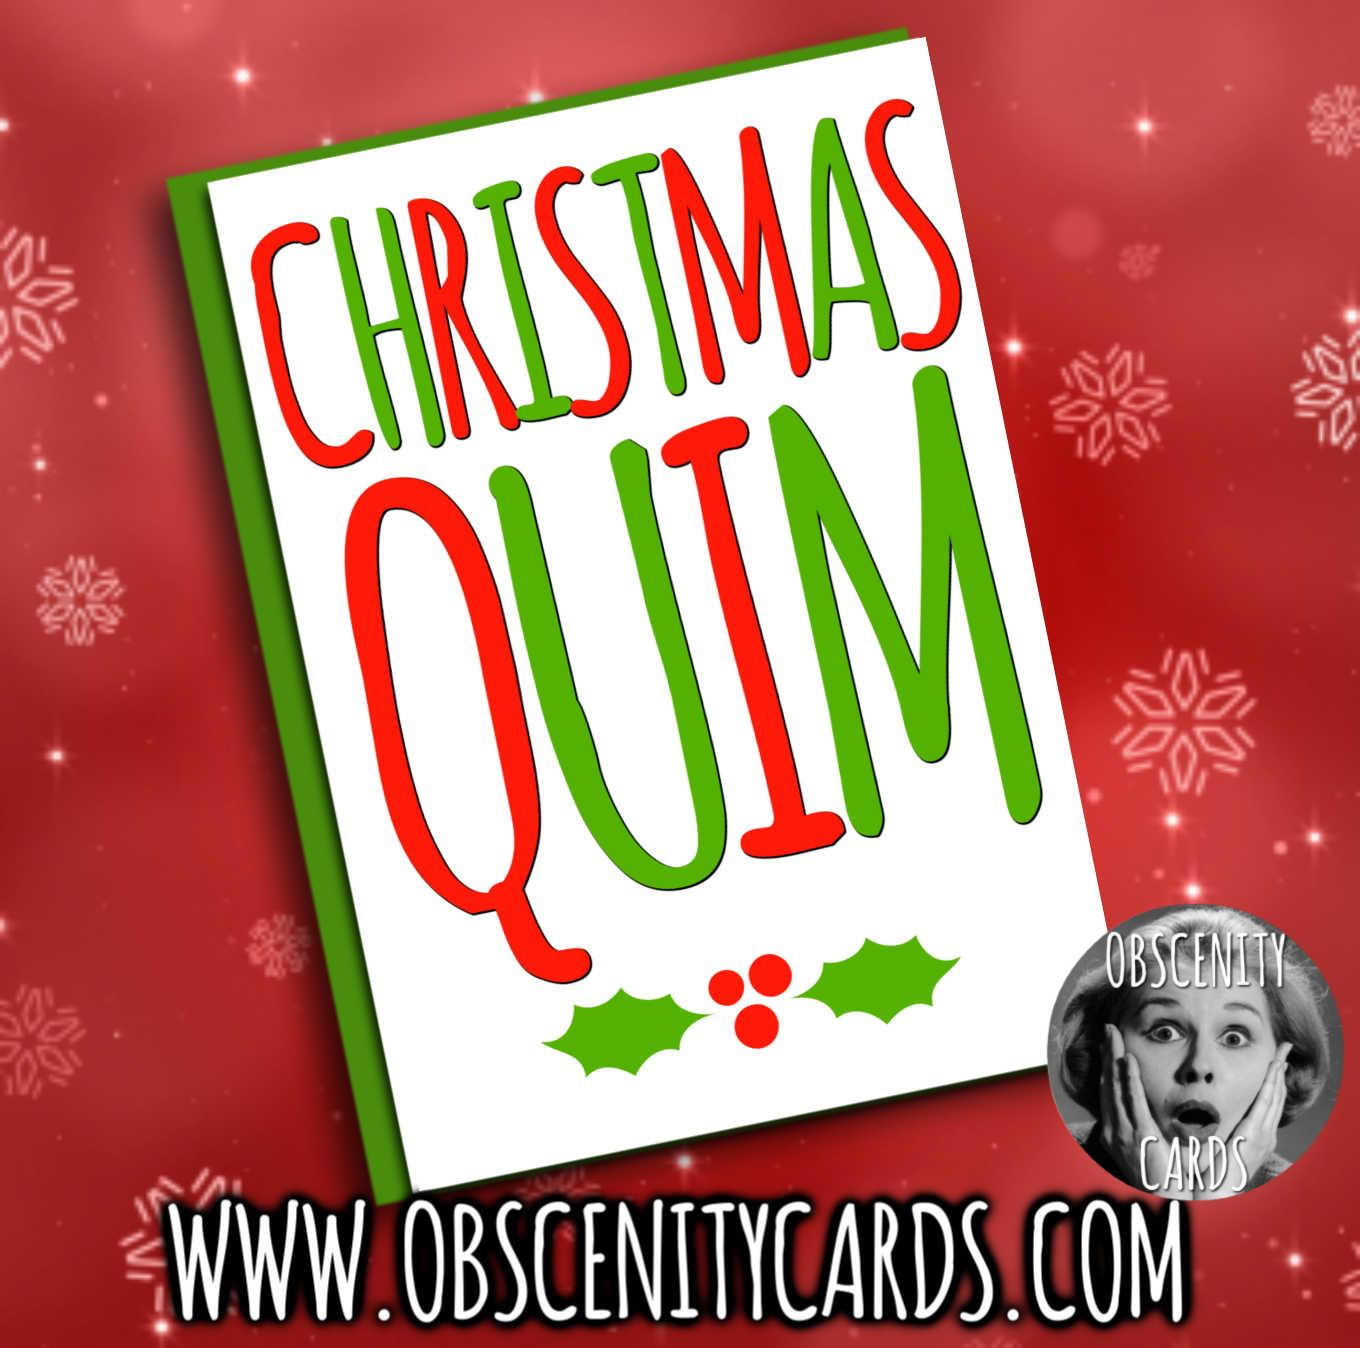 CHRISTMAS QUIM FUNNY CHRISTMAS CARD